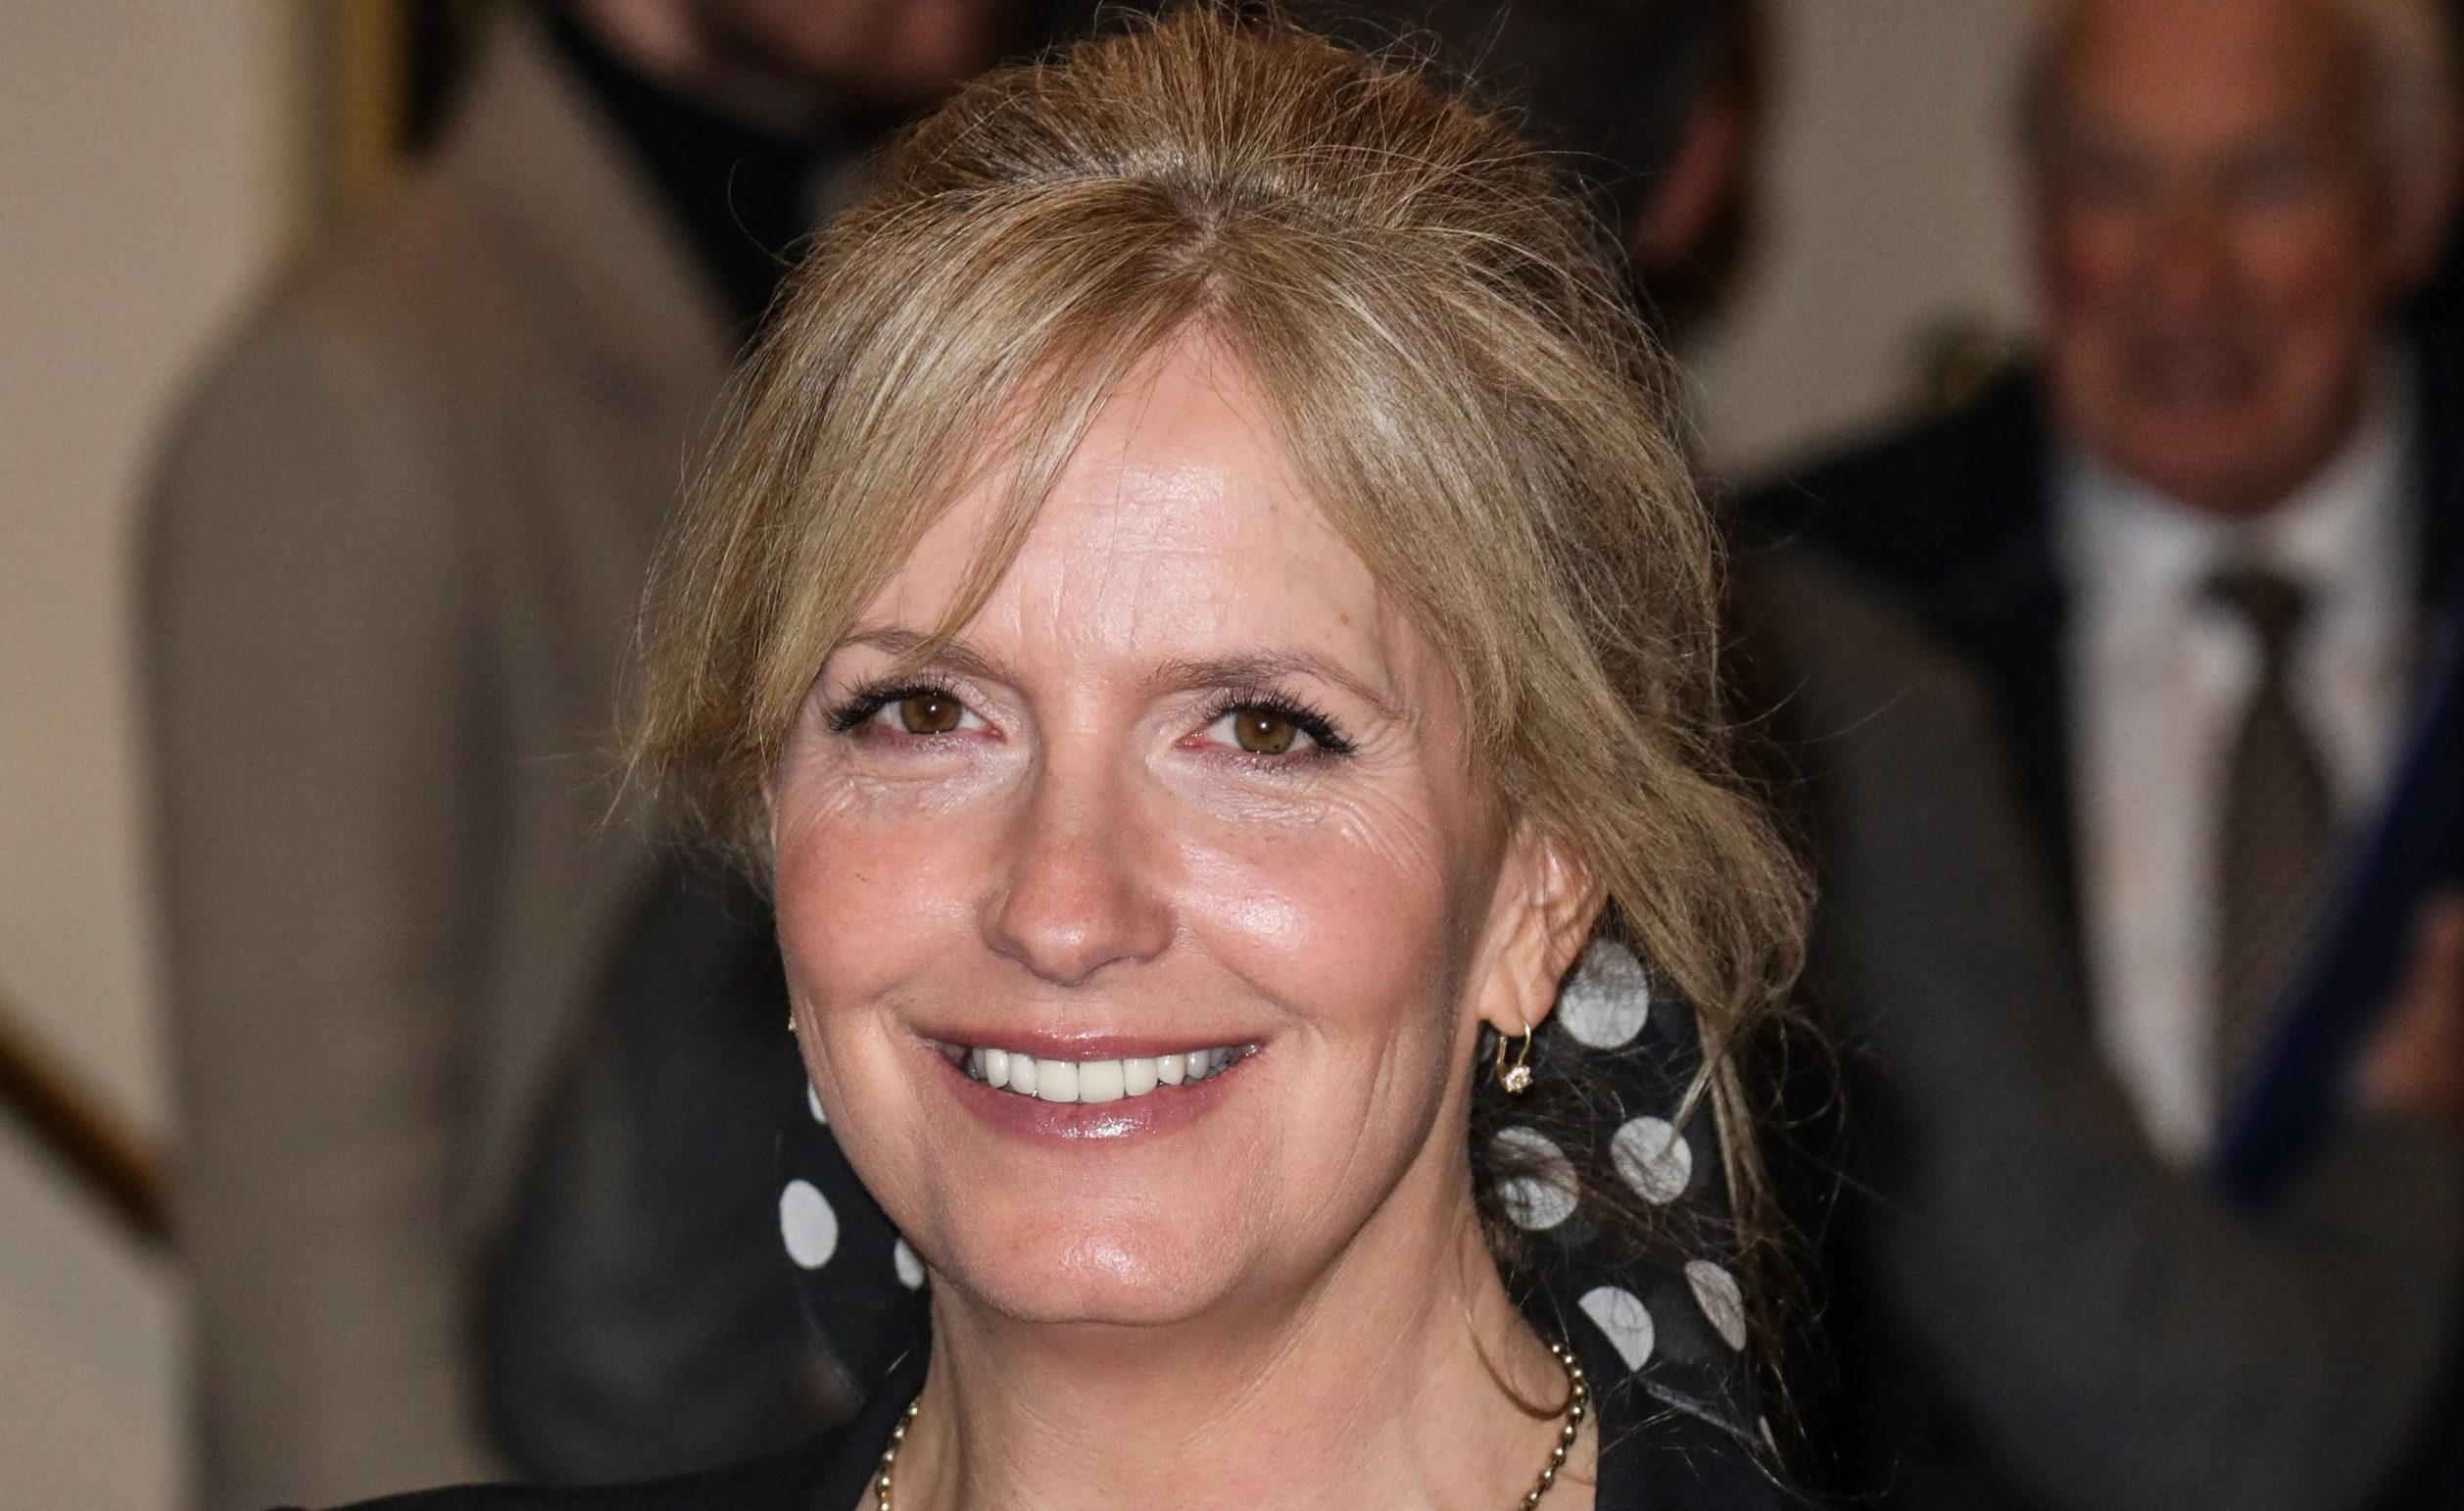 Penny Lancaster thought she had coronavirus, but it turned out to be the menopause